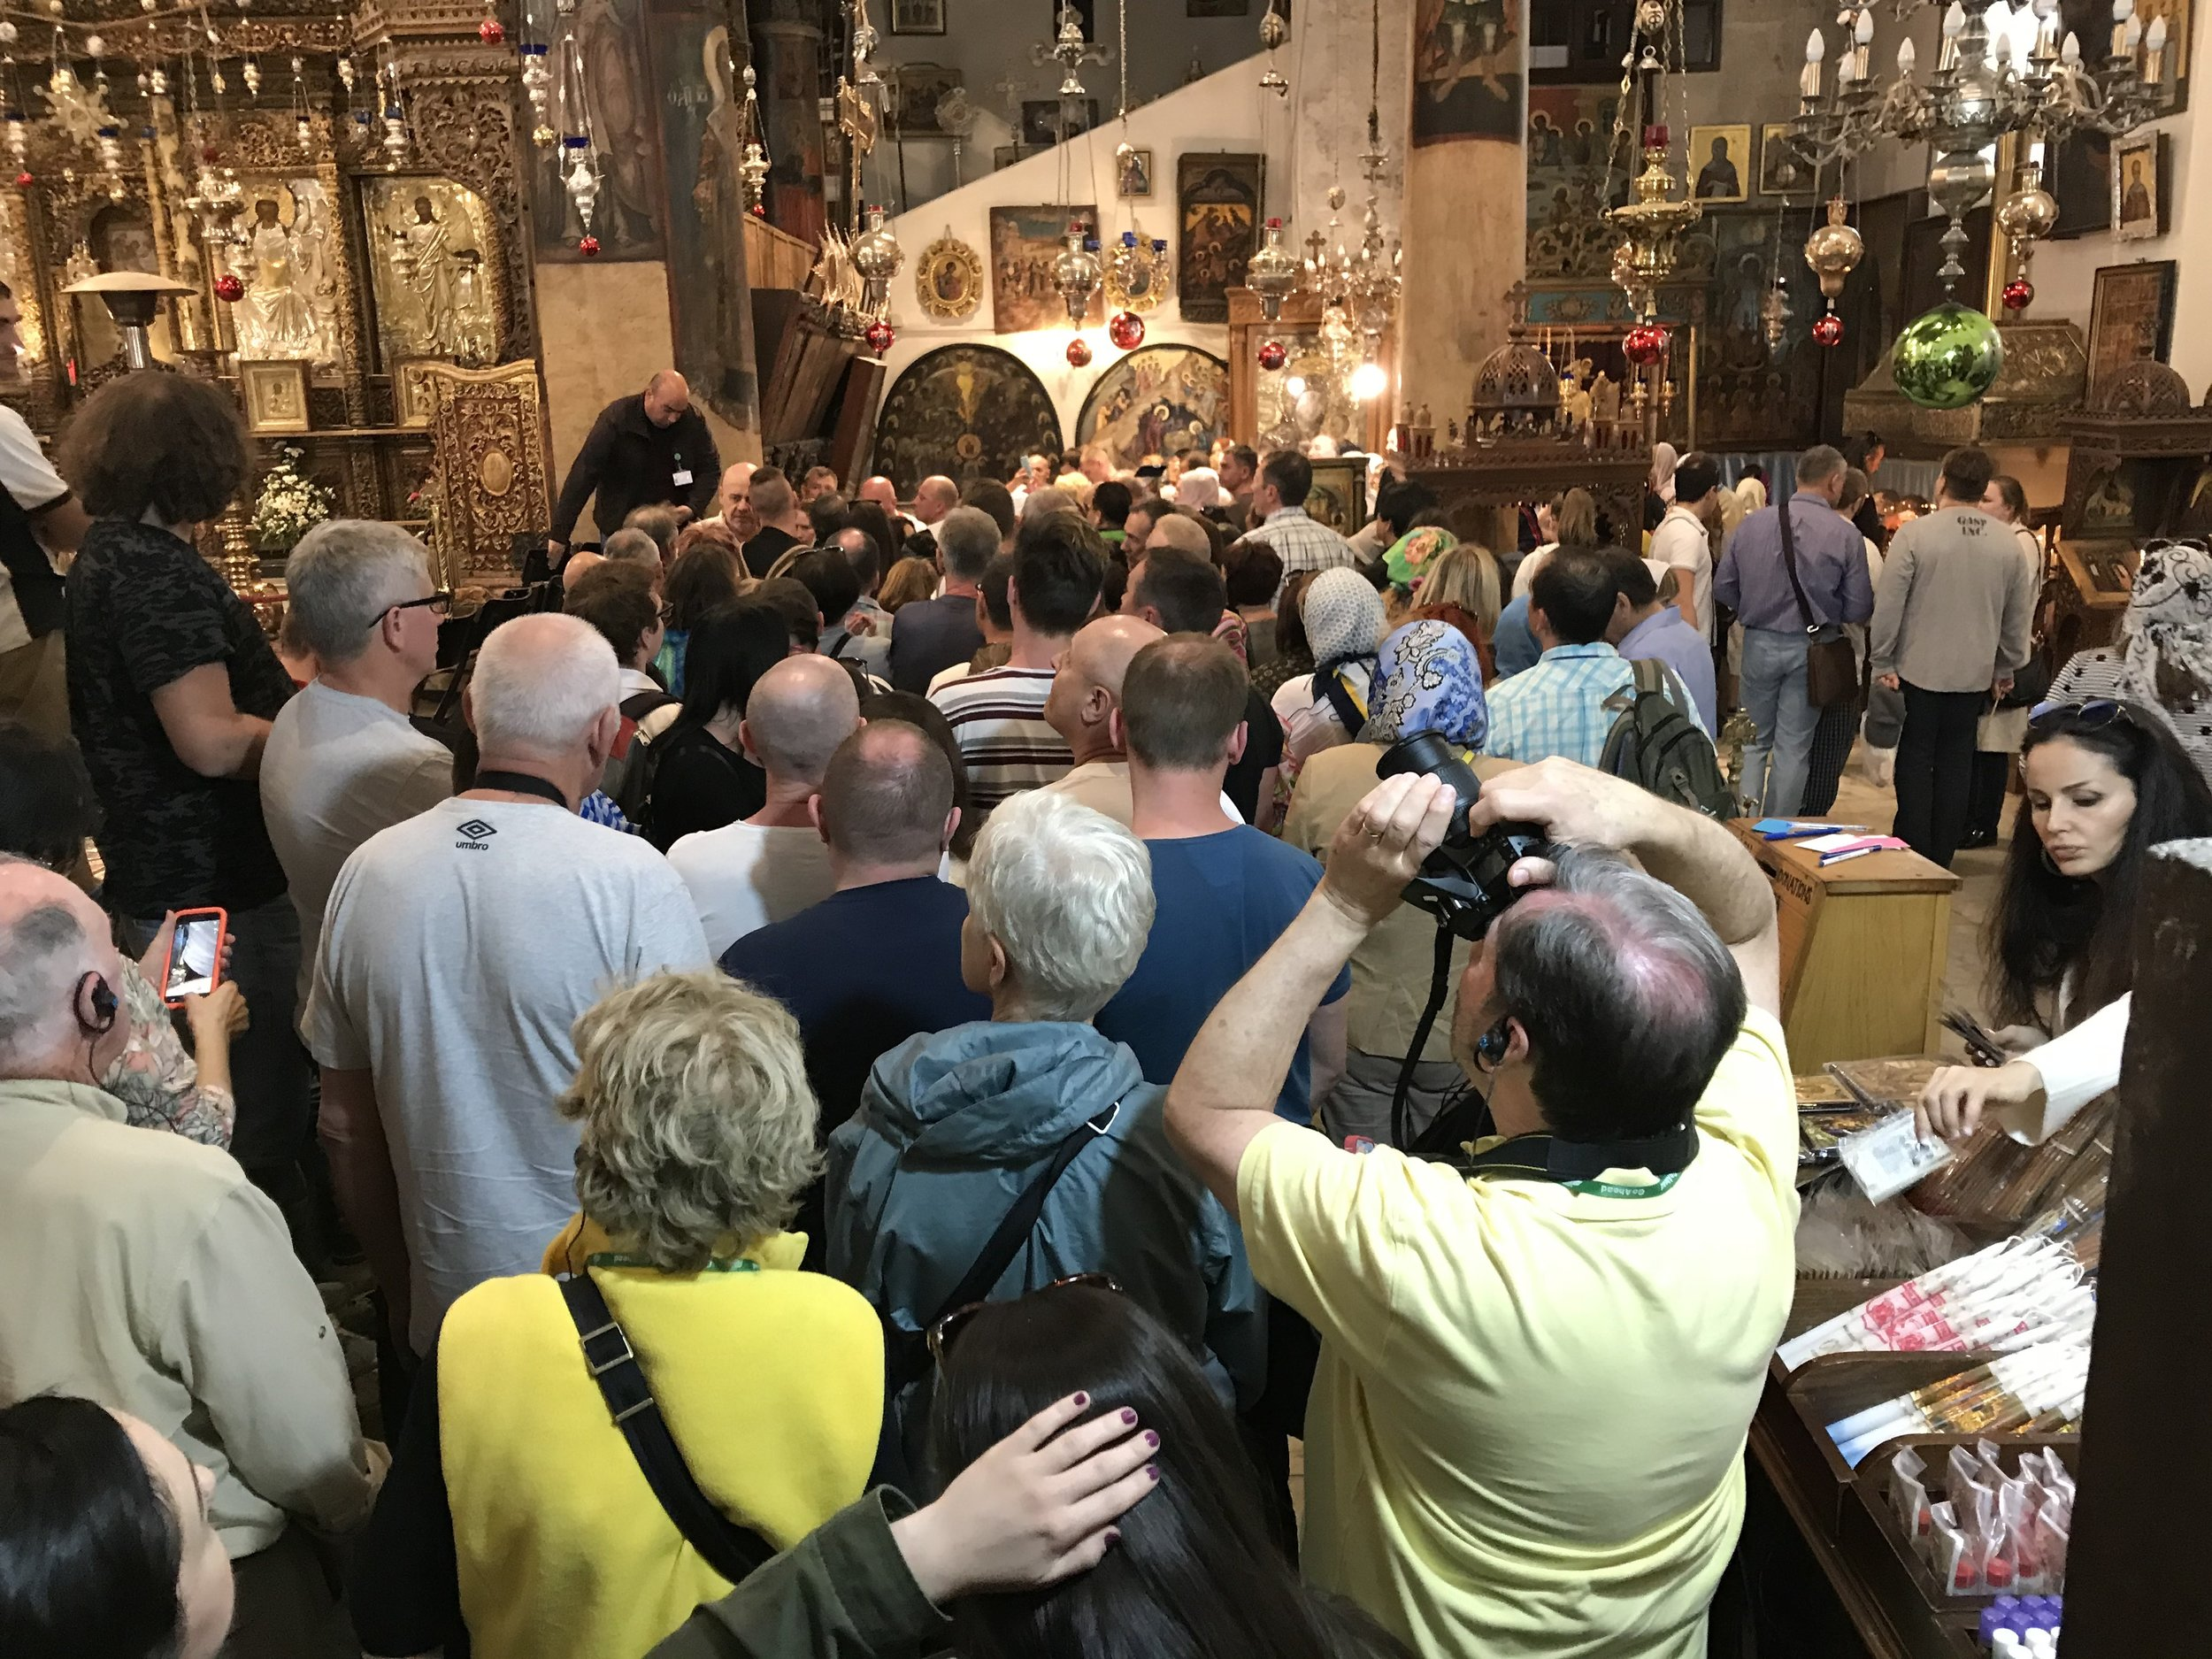 The beginning of the line to see where Jesus was born in the Basilica of the Nativity.